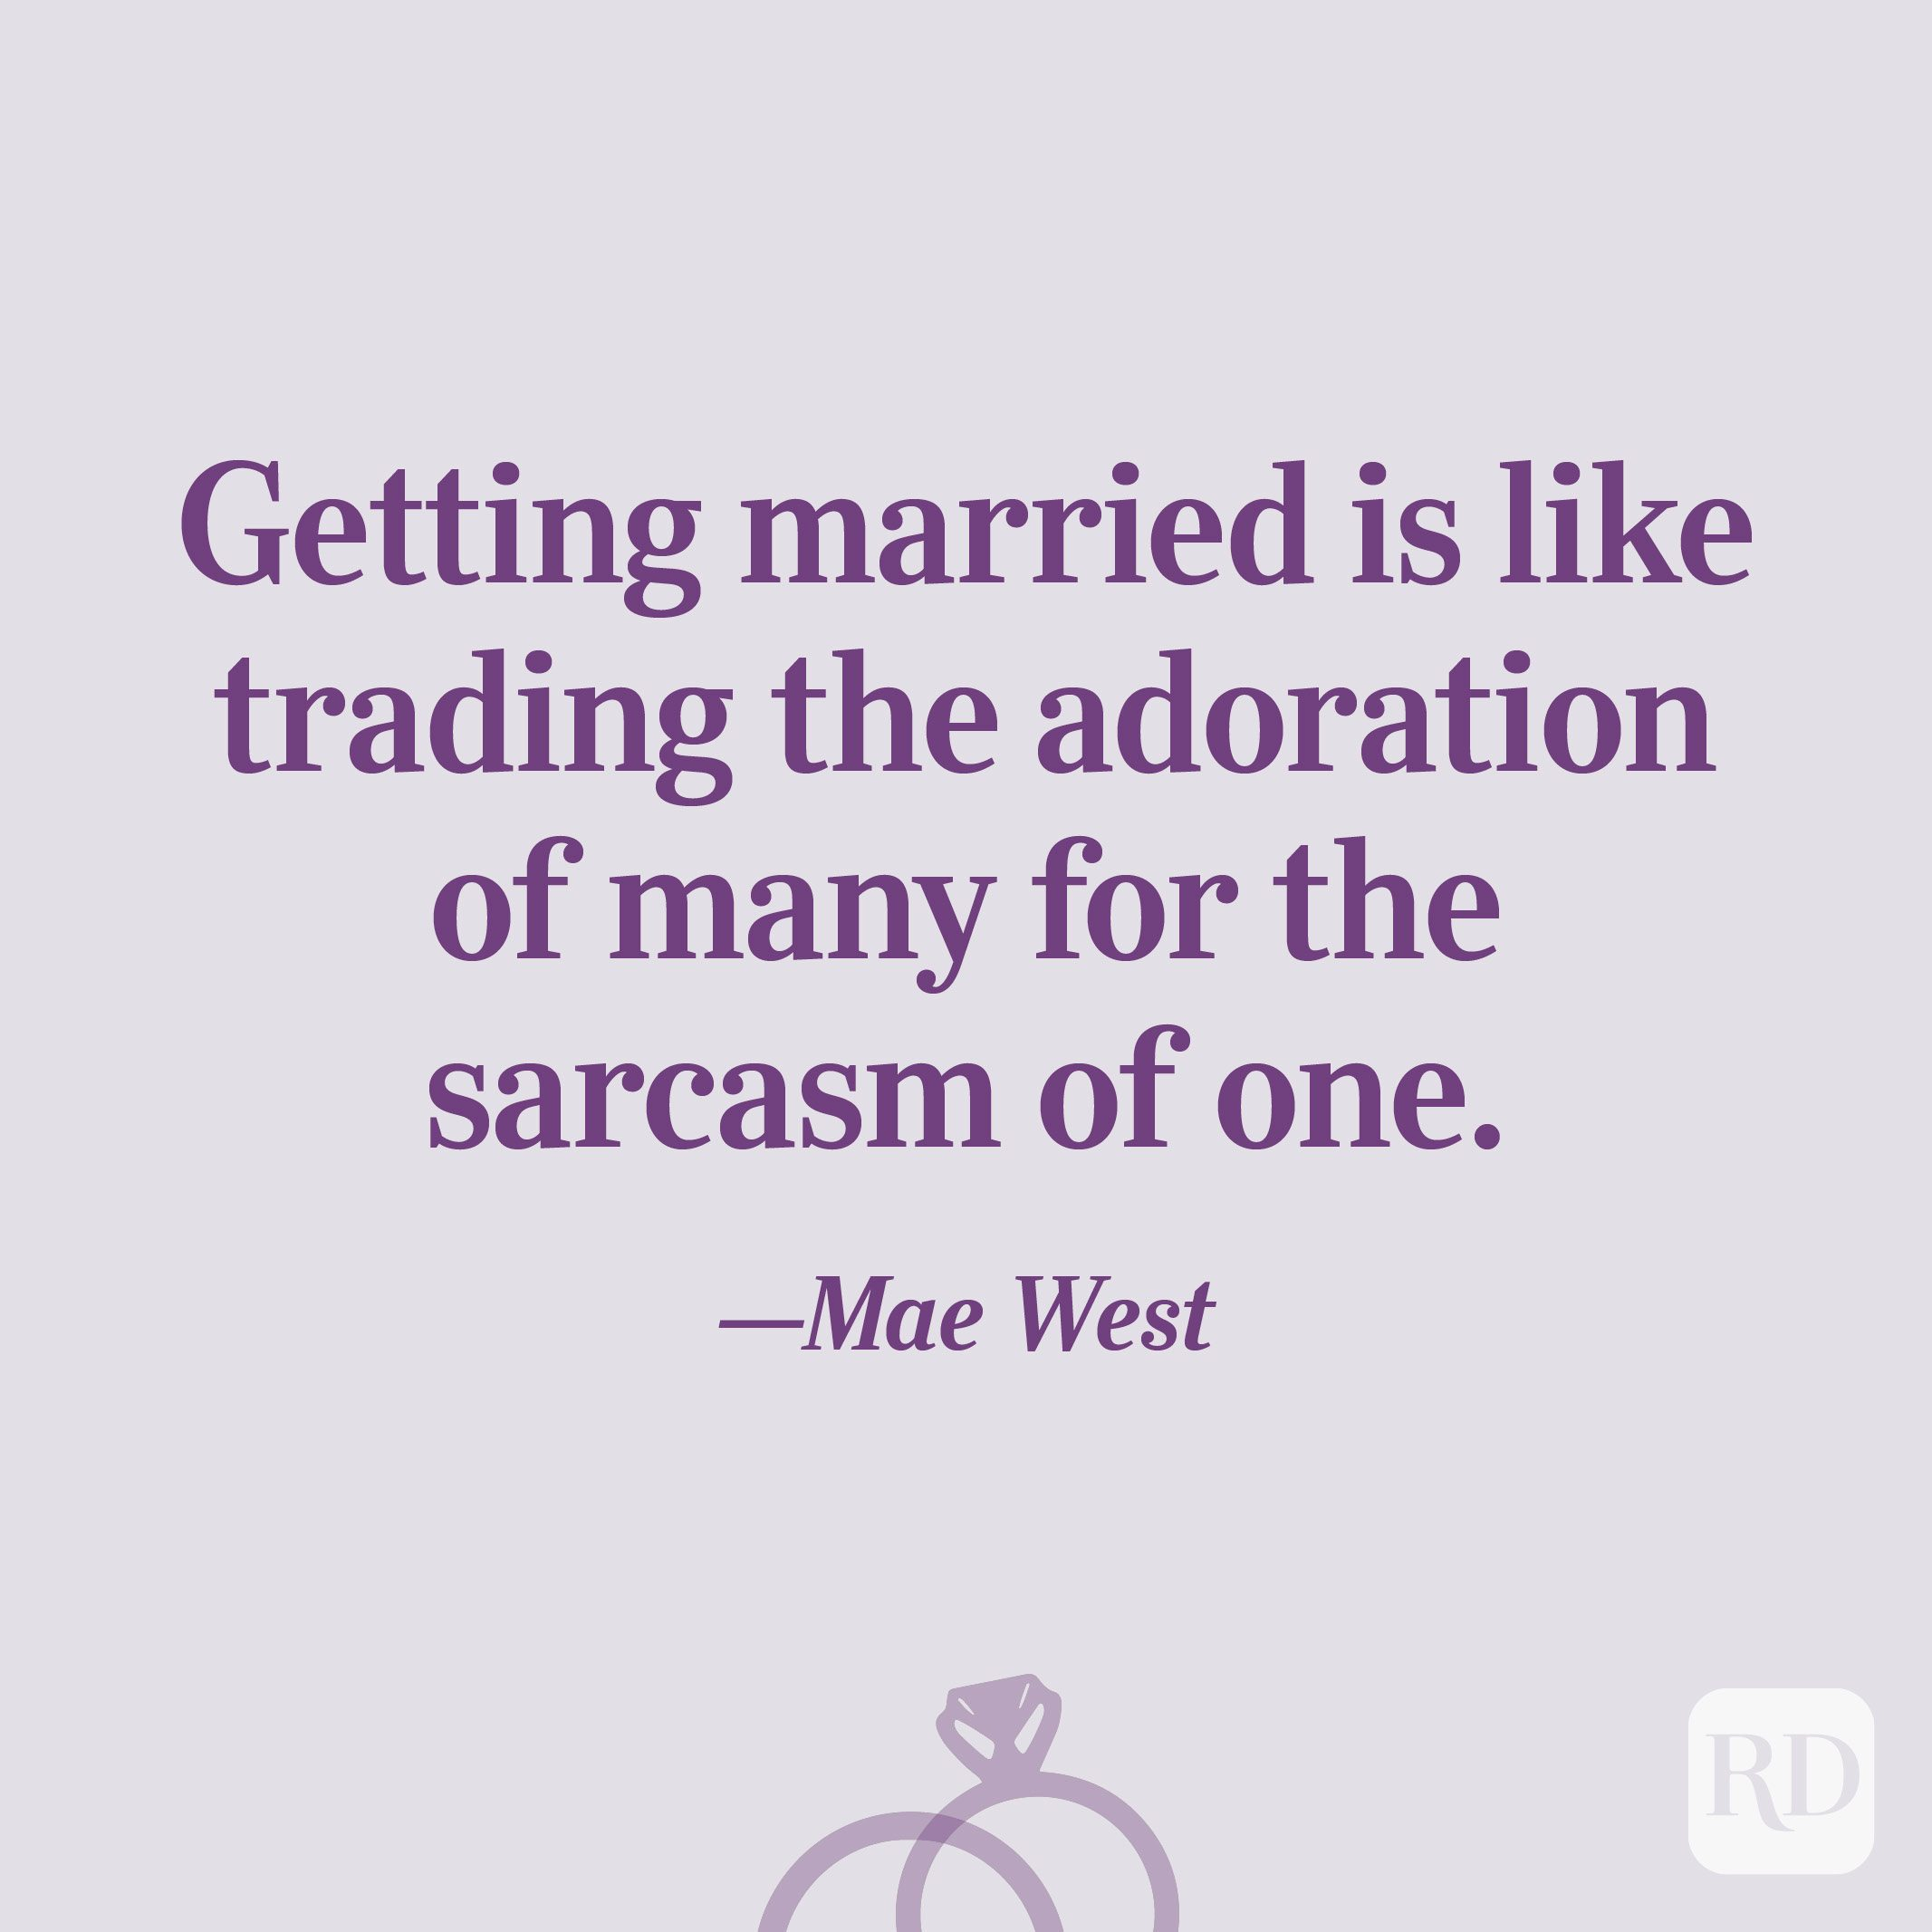 """Getting married is like trading the adoration of many for the sarcasm of one.""—Mae West"